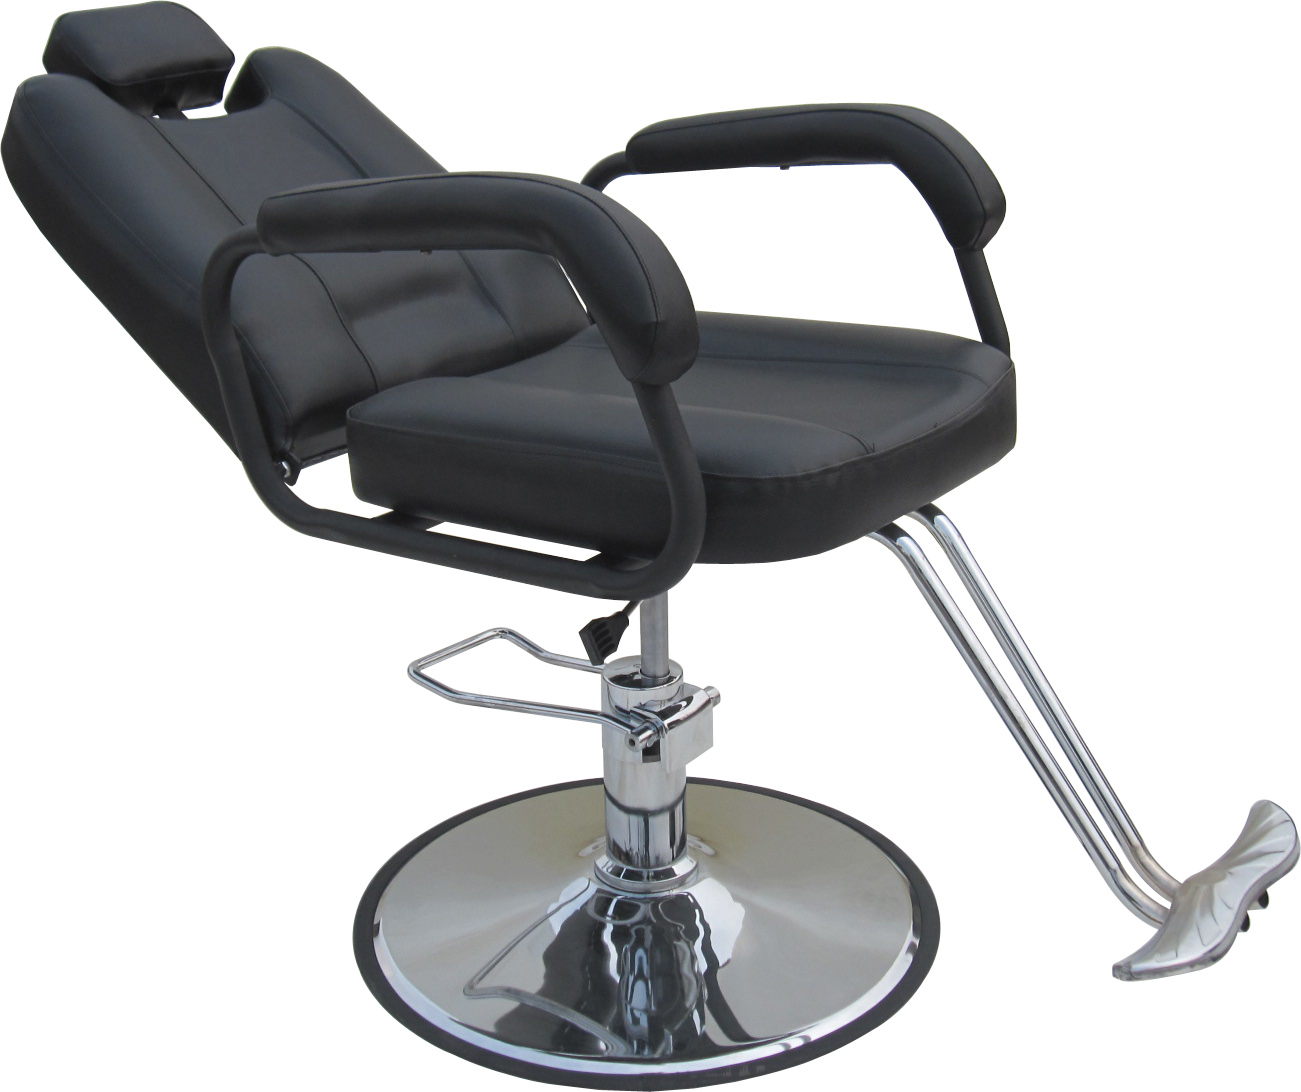 Barber Chair Factory Direct Haircut Chair Hair Salon Special Hairdressing Chair Down Lift Hairdressing Chair Barber Shop Chair